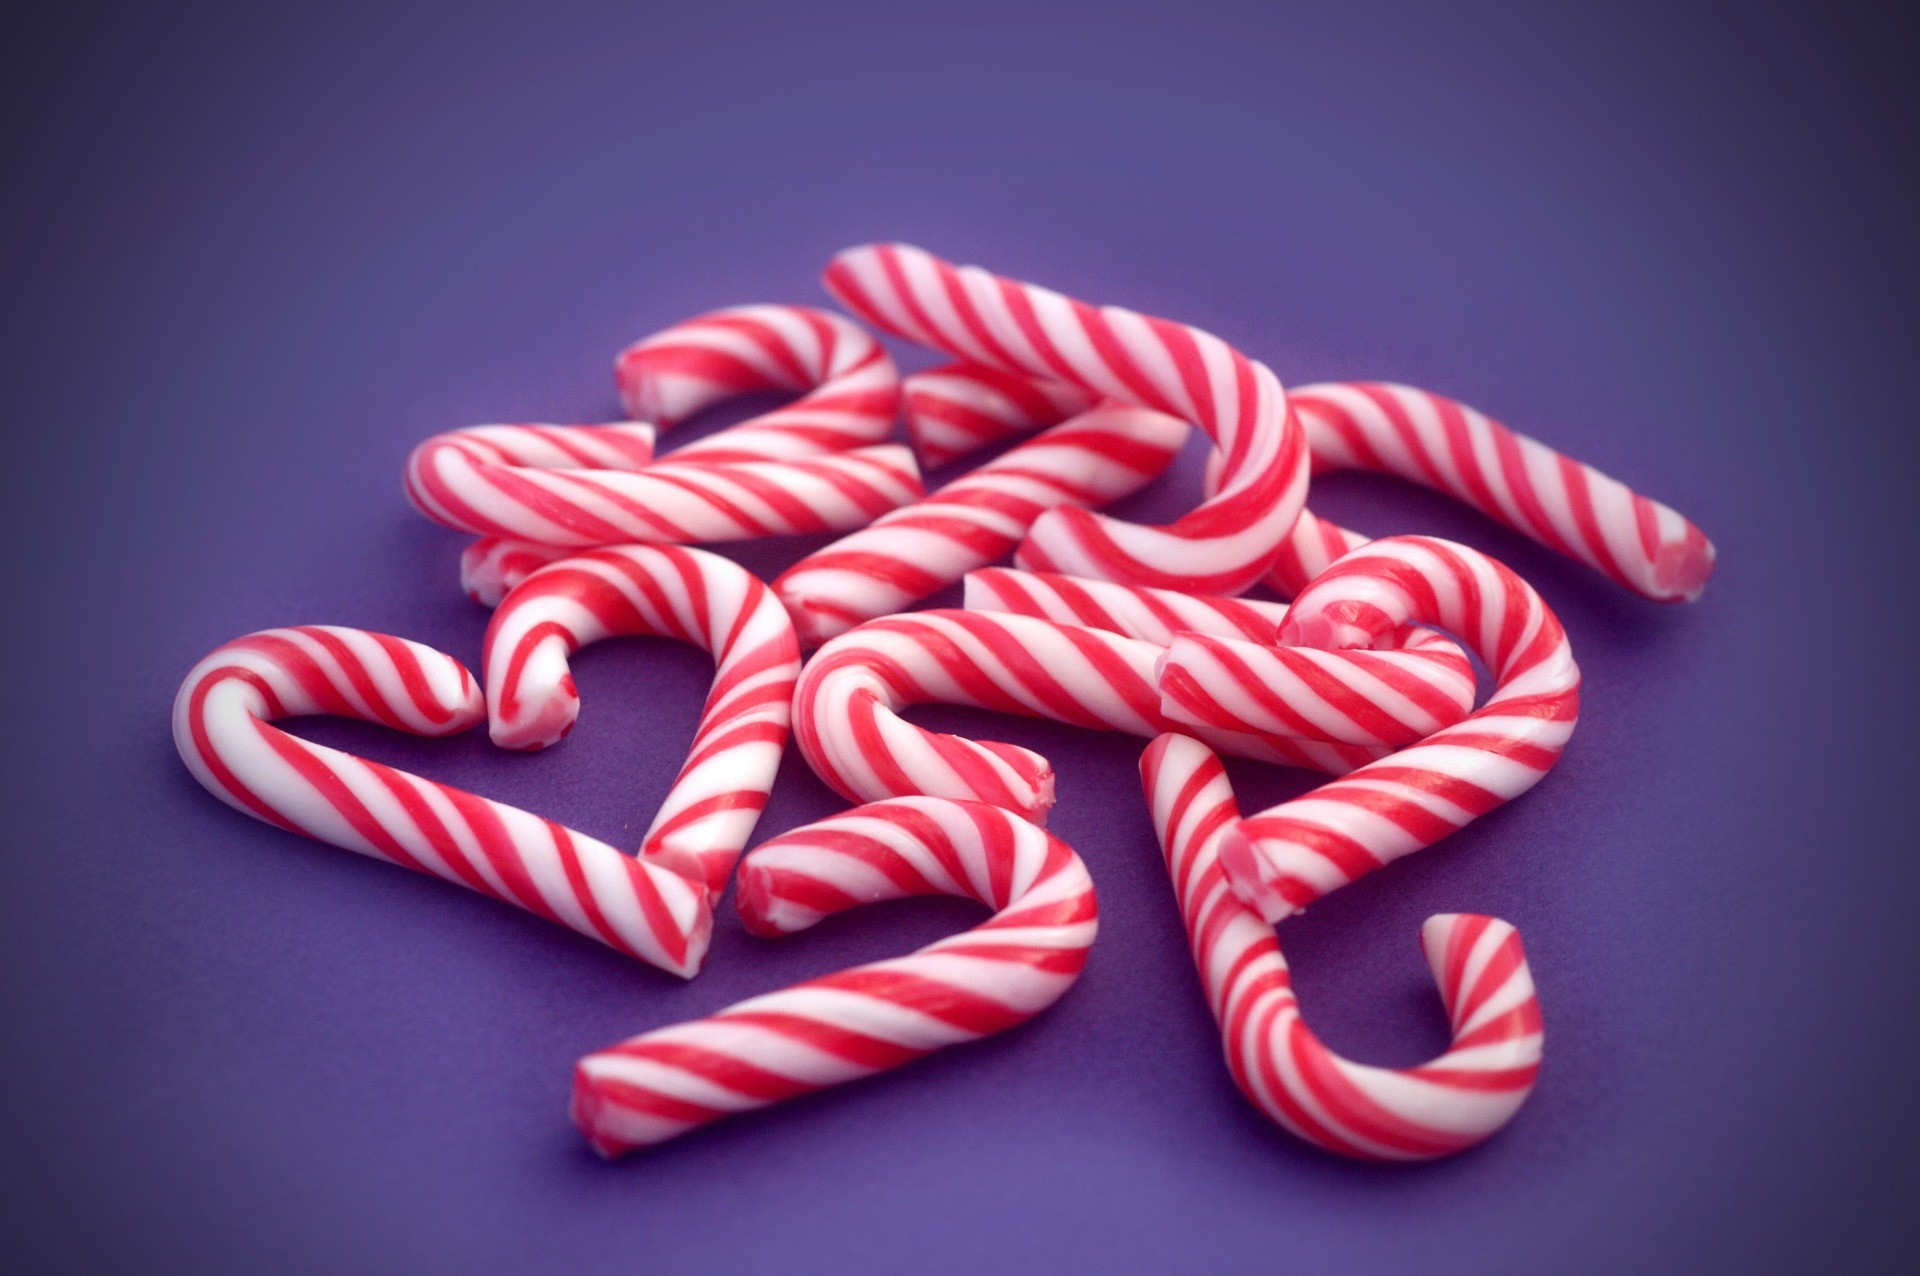 candy-cane-488009_1920